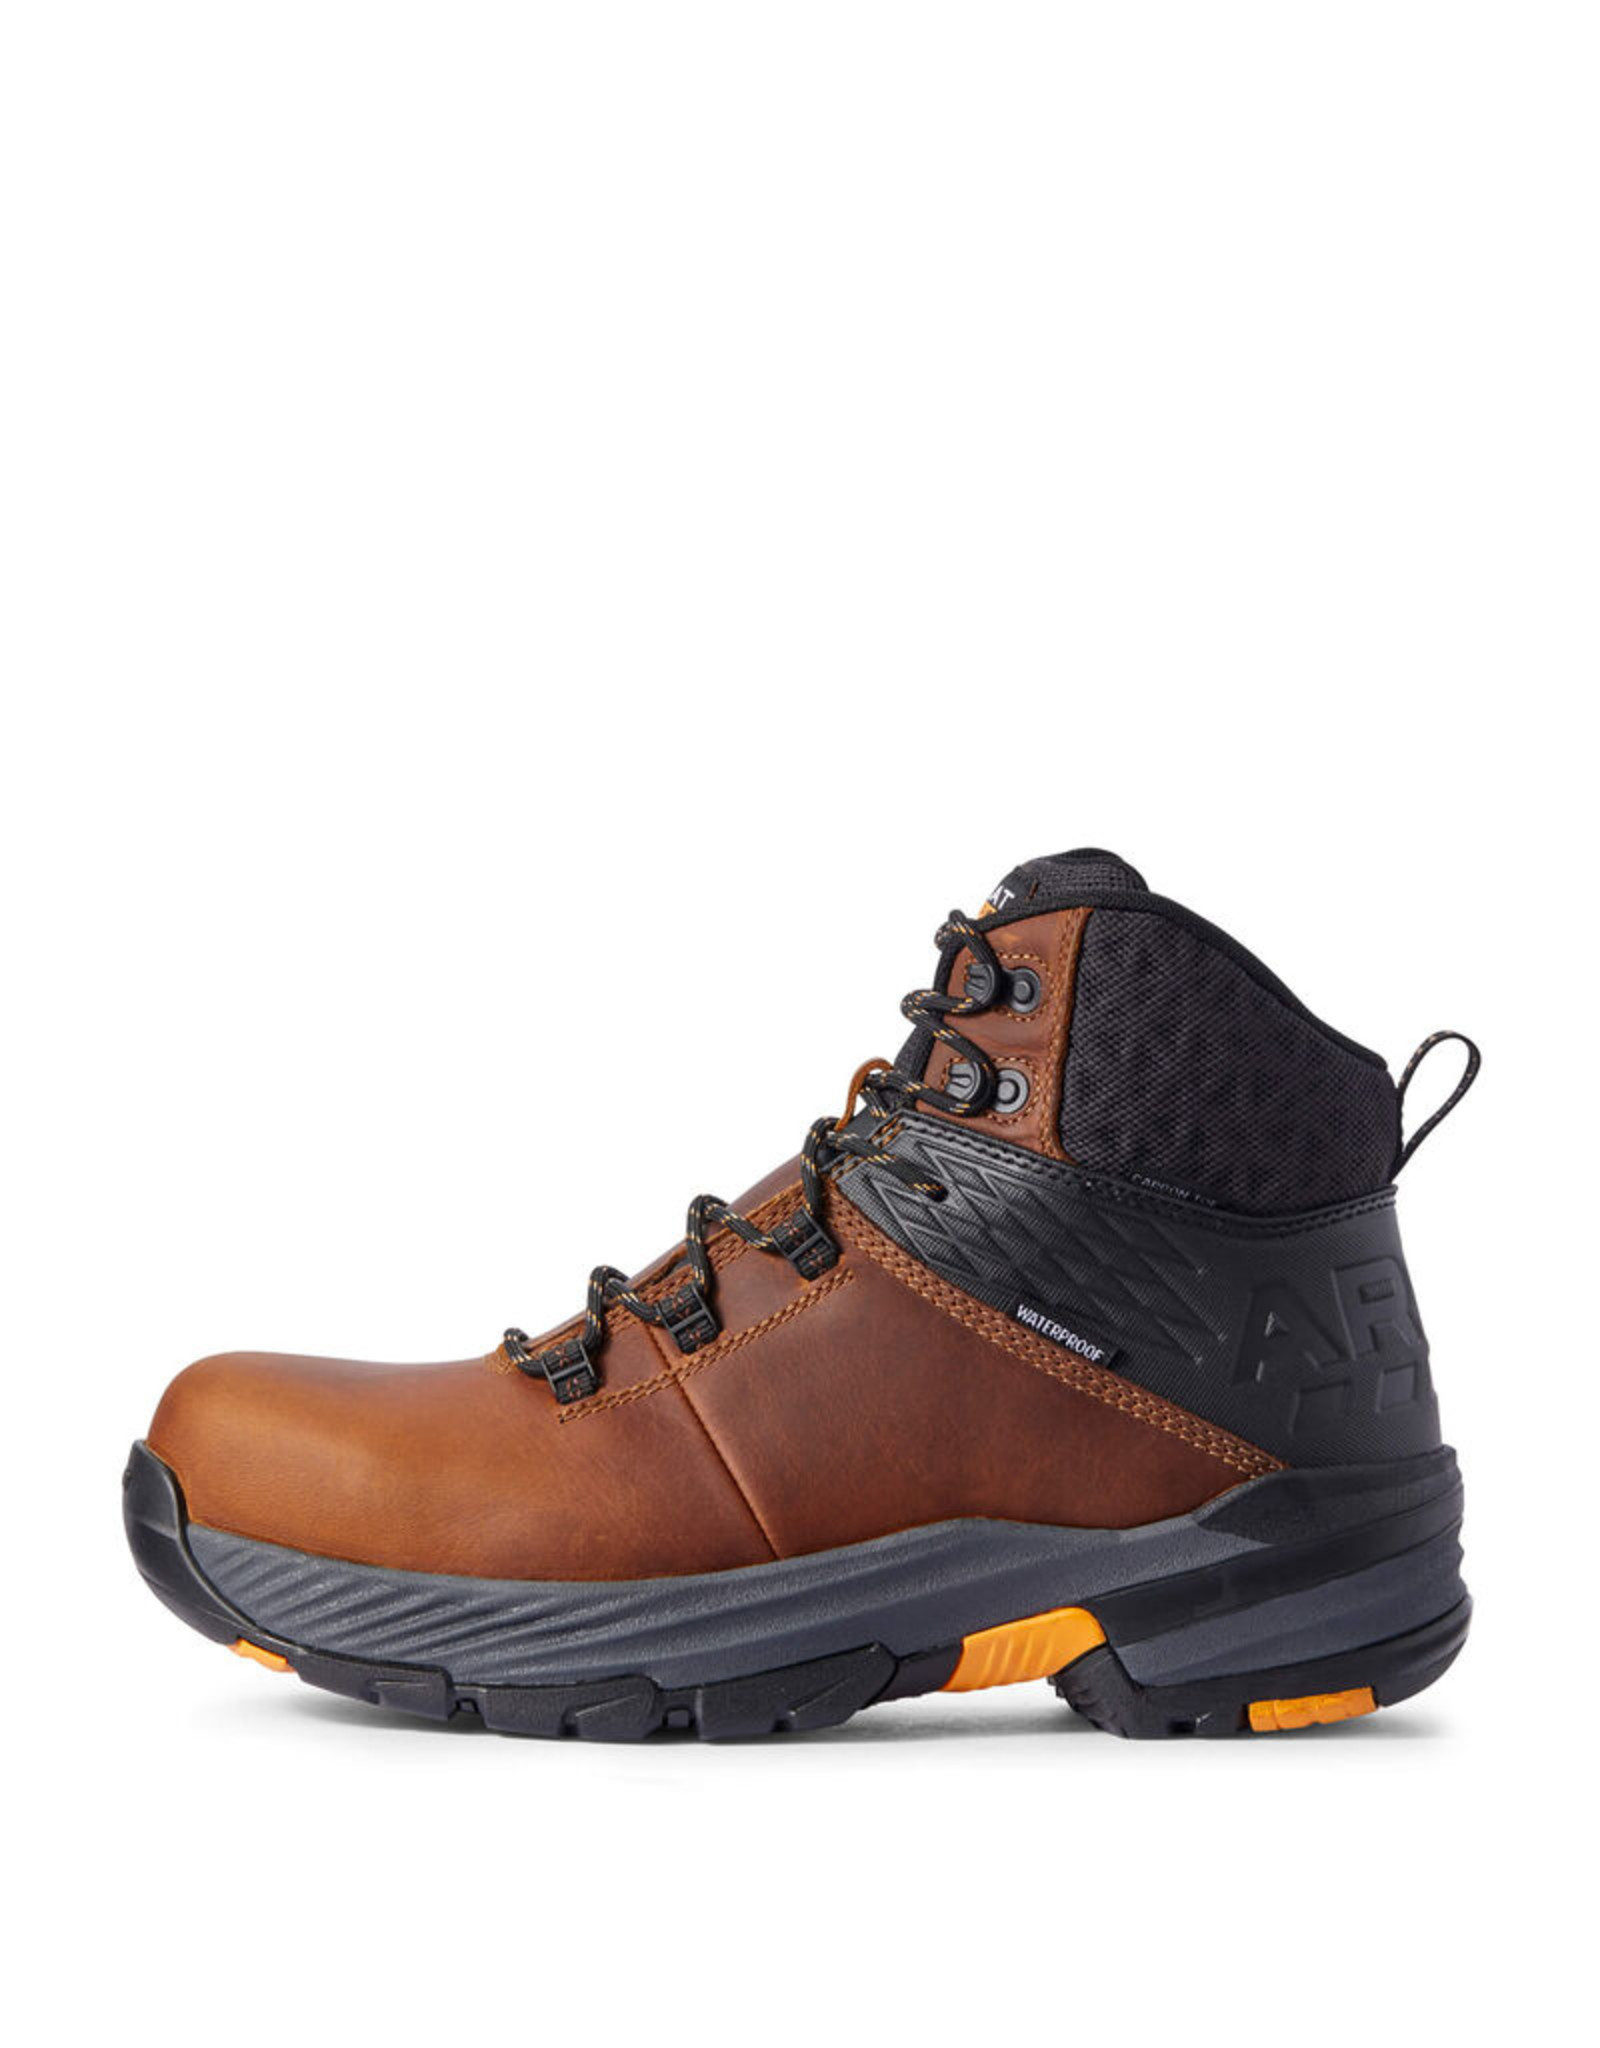 Boots-Men ARIAT Stryker 360 6in